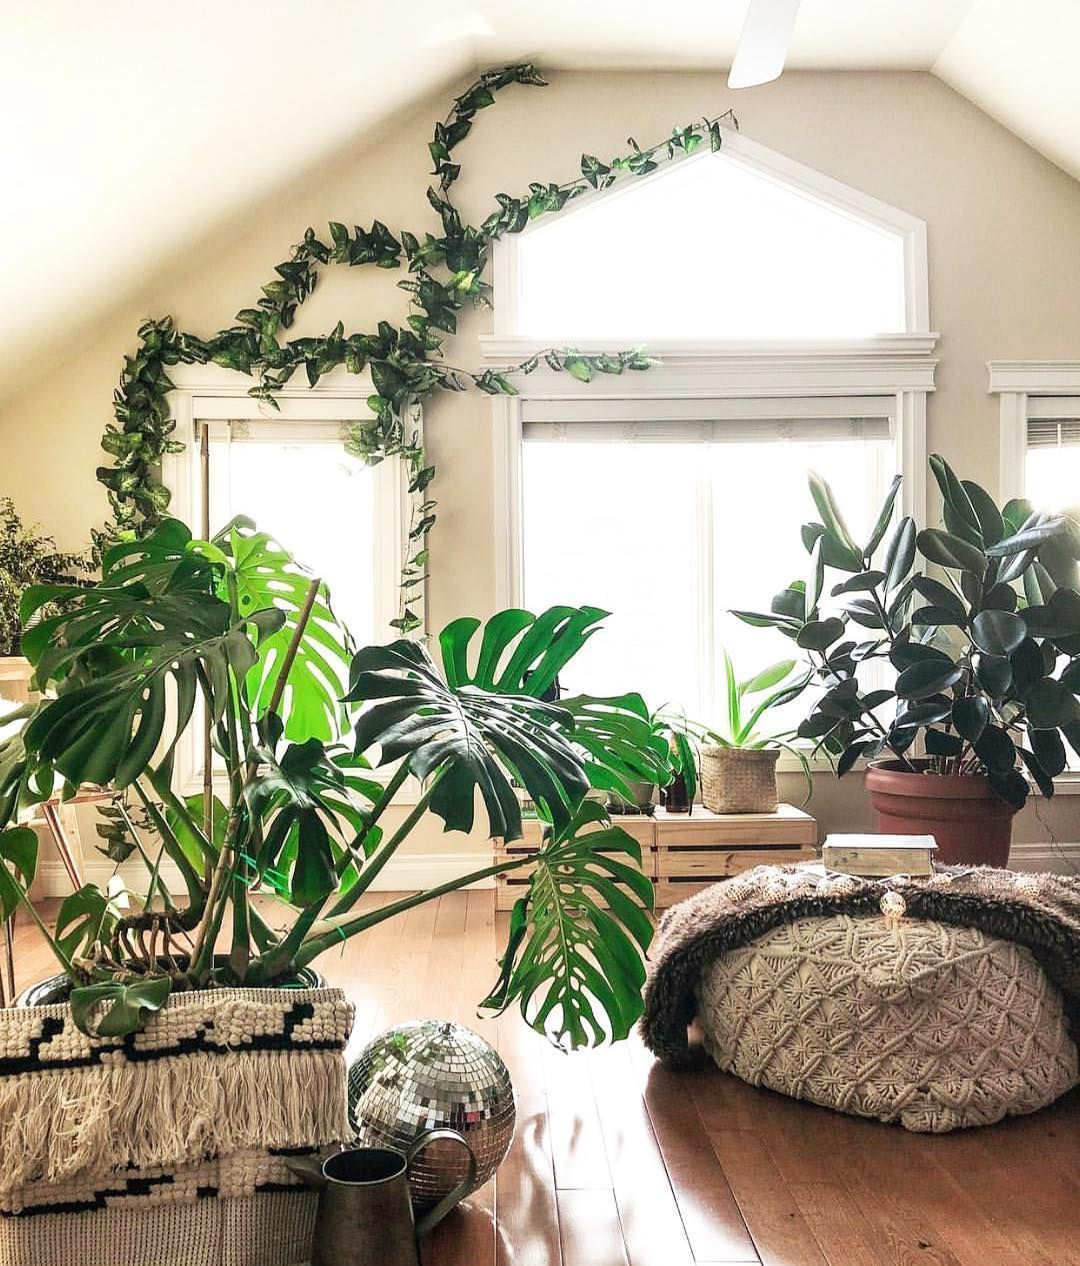 115 Simple Foliage Living Room Ideas For Summer That Make Coolest House Javgohome Home Inspiration Room With Plants Indoor Garden Indoor Plants